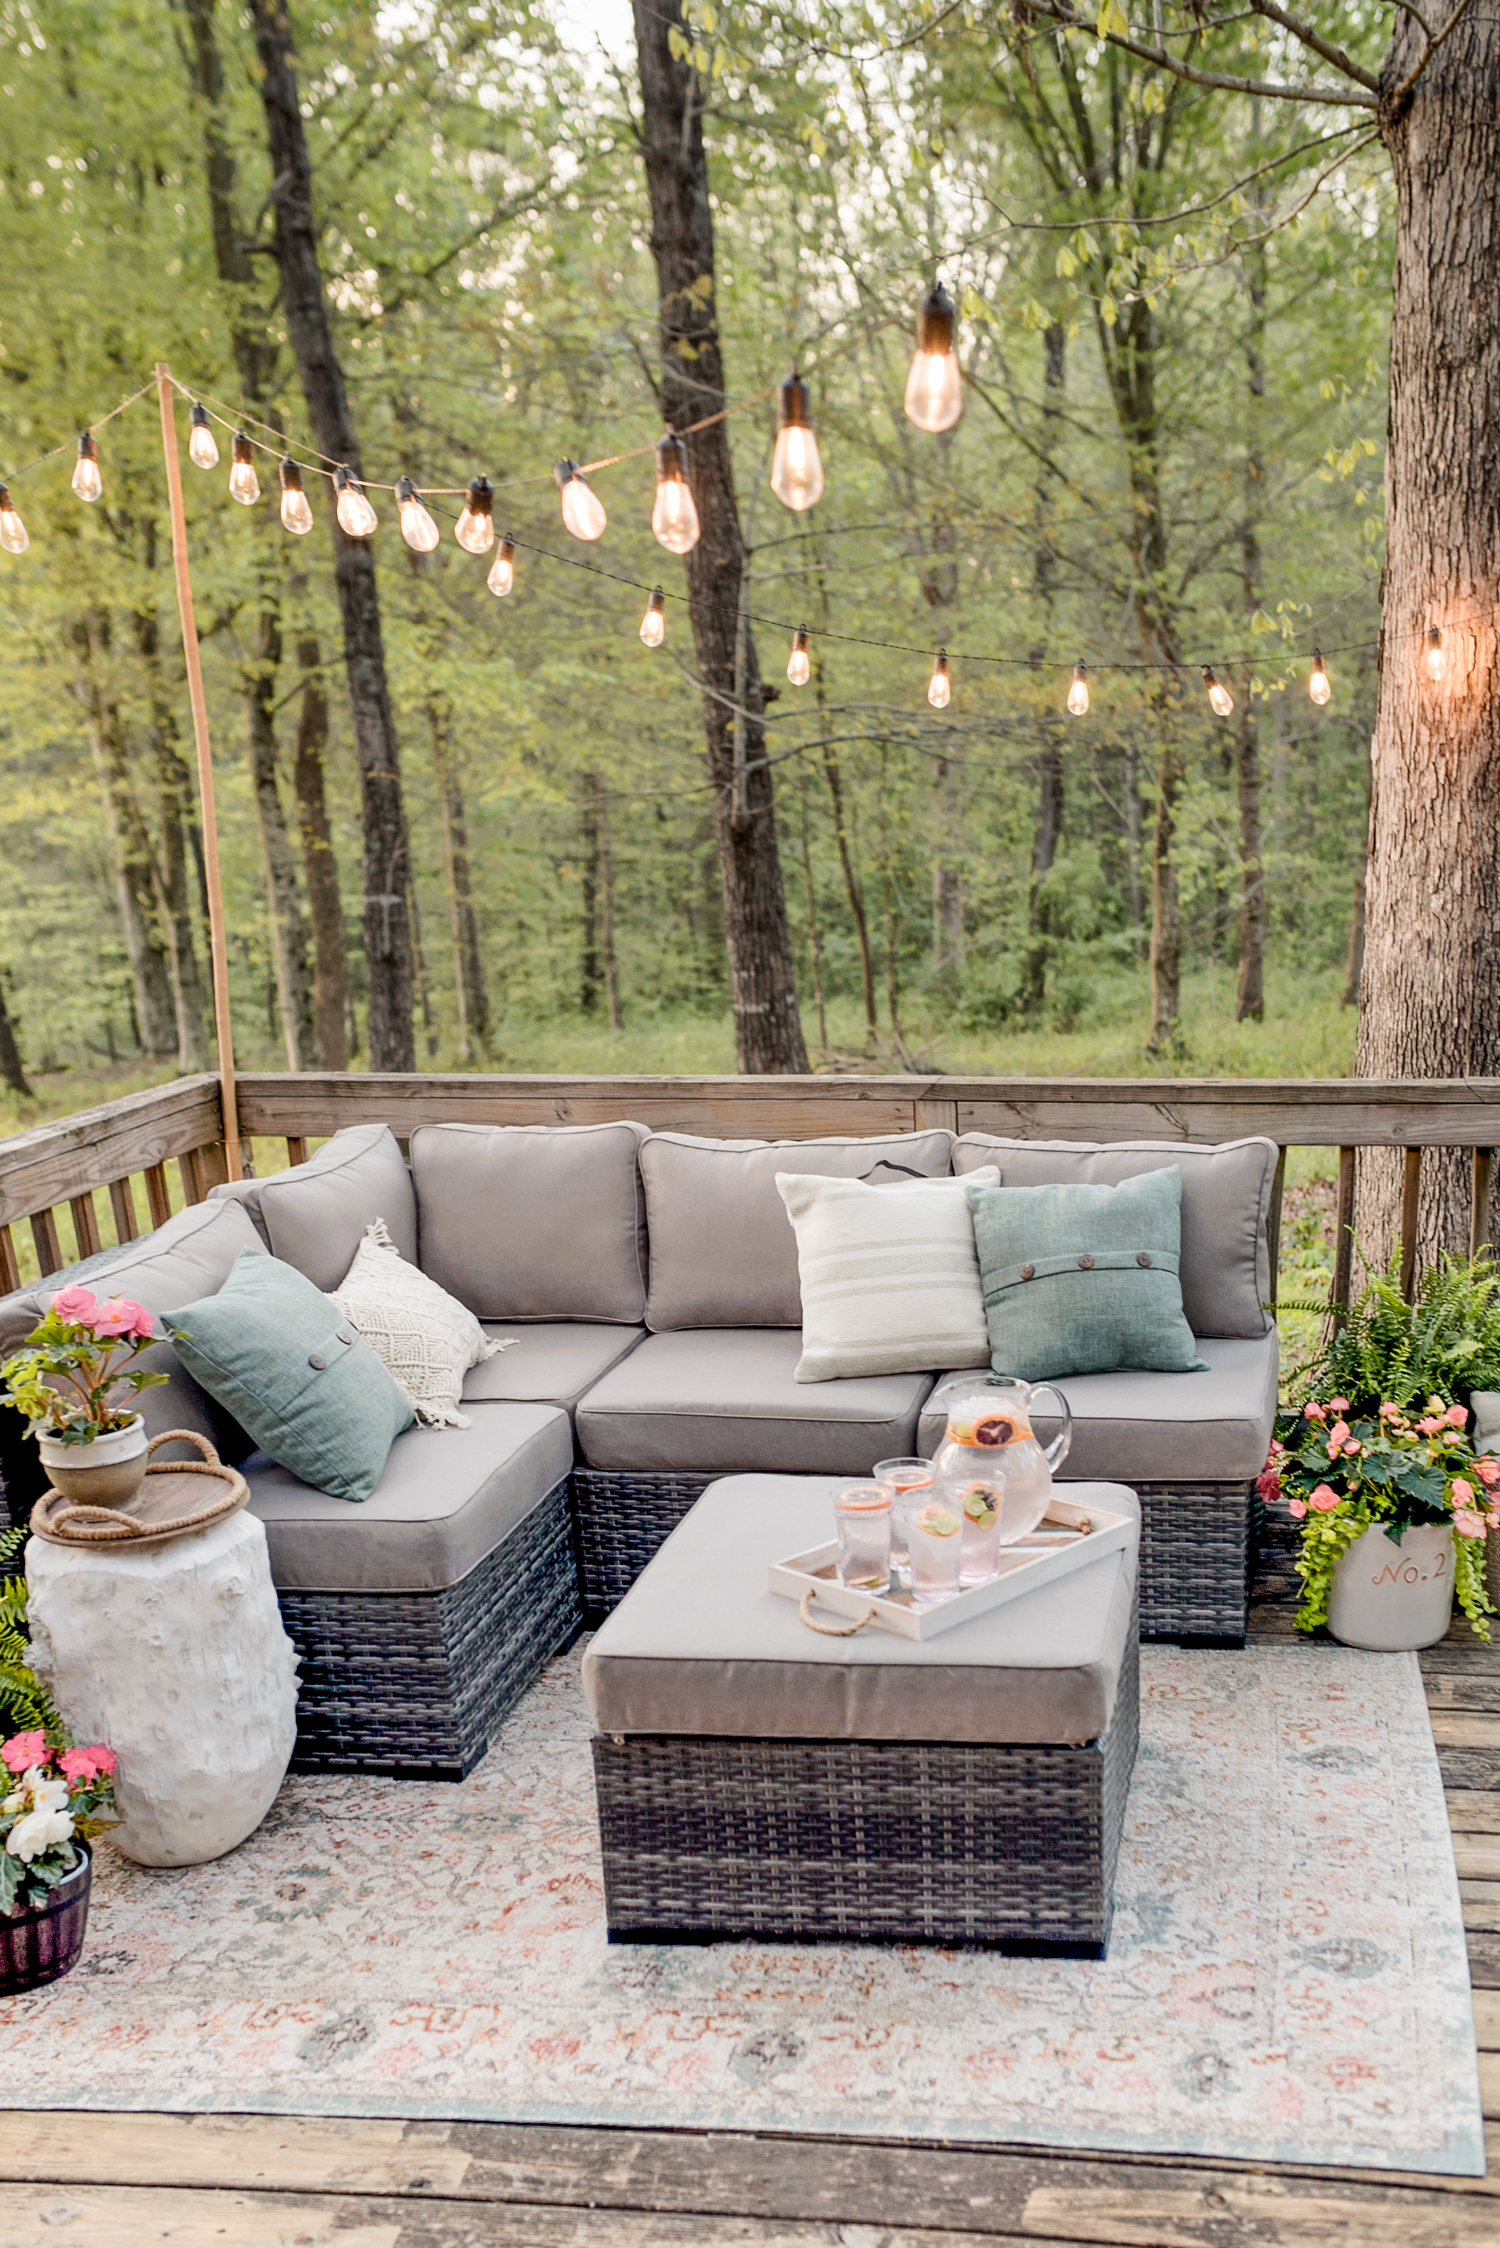 Outdoor Decorating Ideas Tips On How To Decorate Outdoors intended for 16 Smart Designs of How to Makeover Ideas To Decorate Backyard